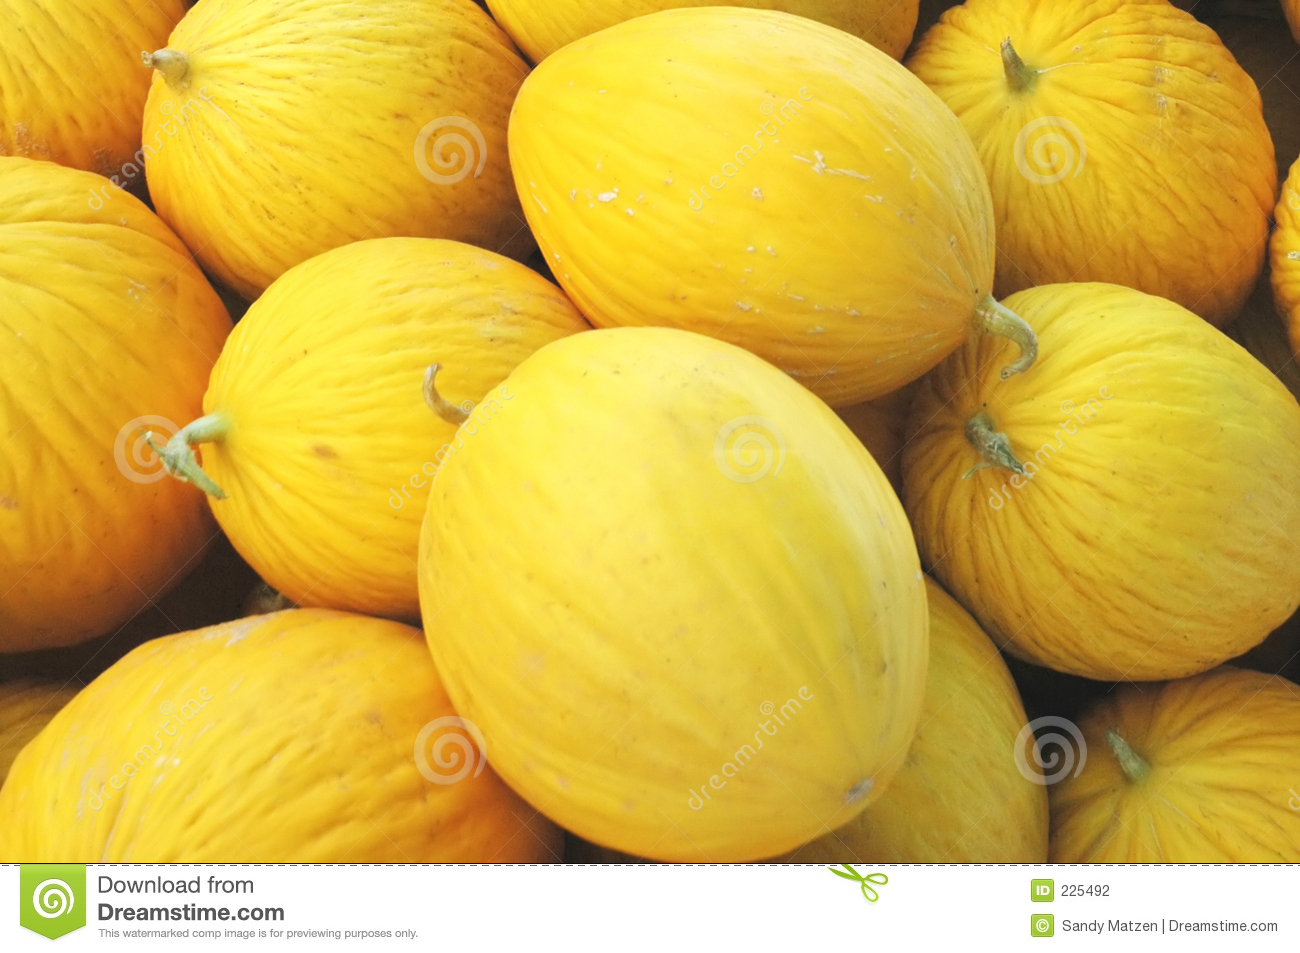 Honeymelons2